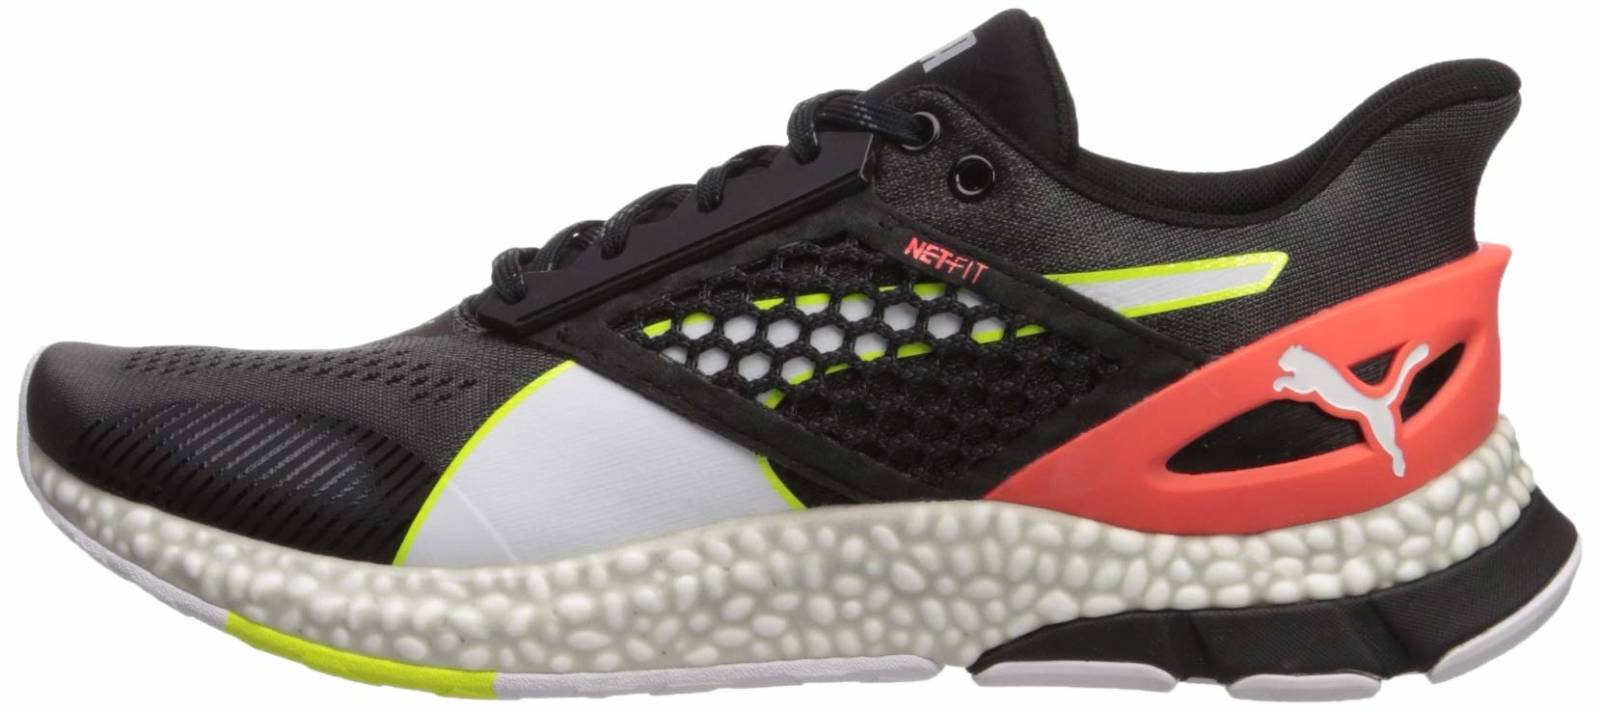 Comercialización pintar insertar  Only $50 + Review of Puma Hybrid Astro | RunRepeat